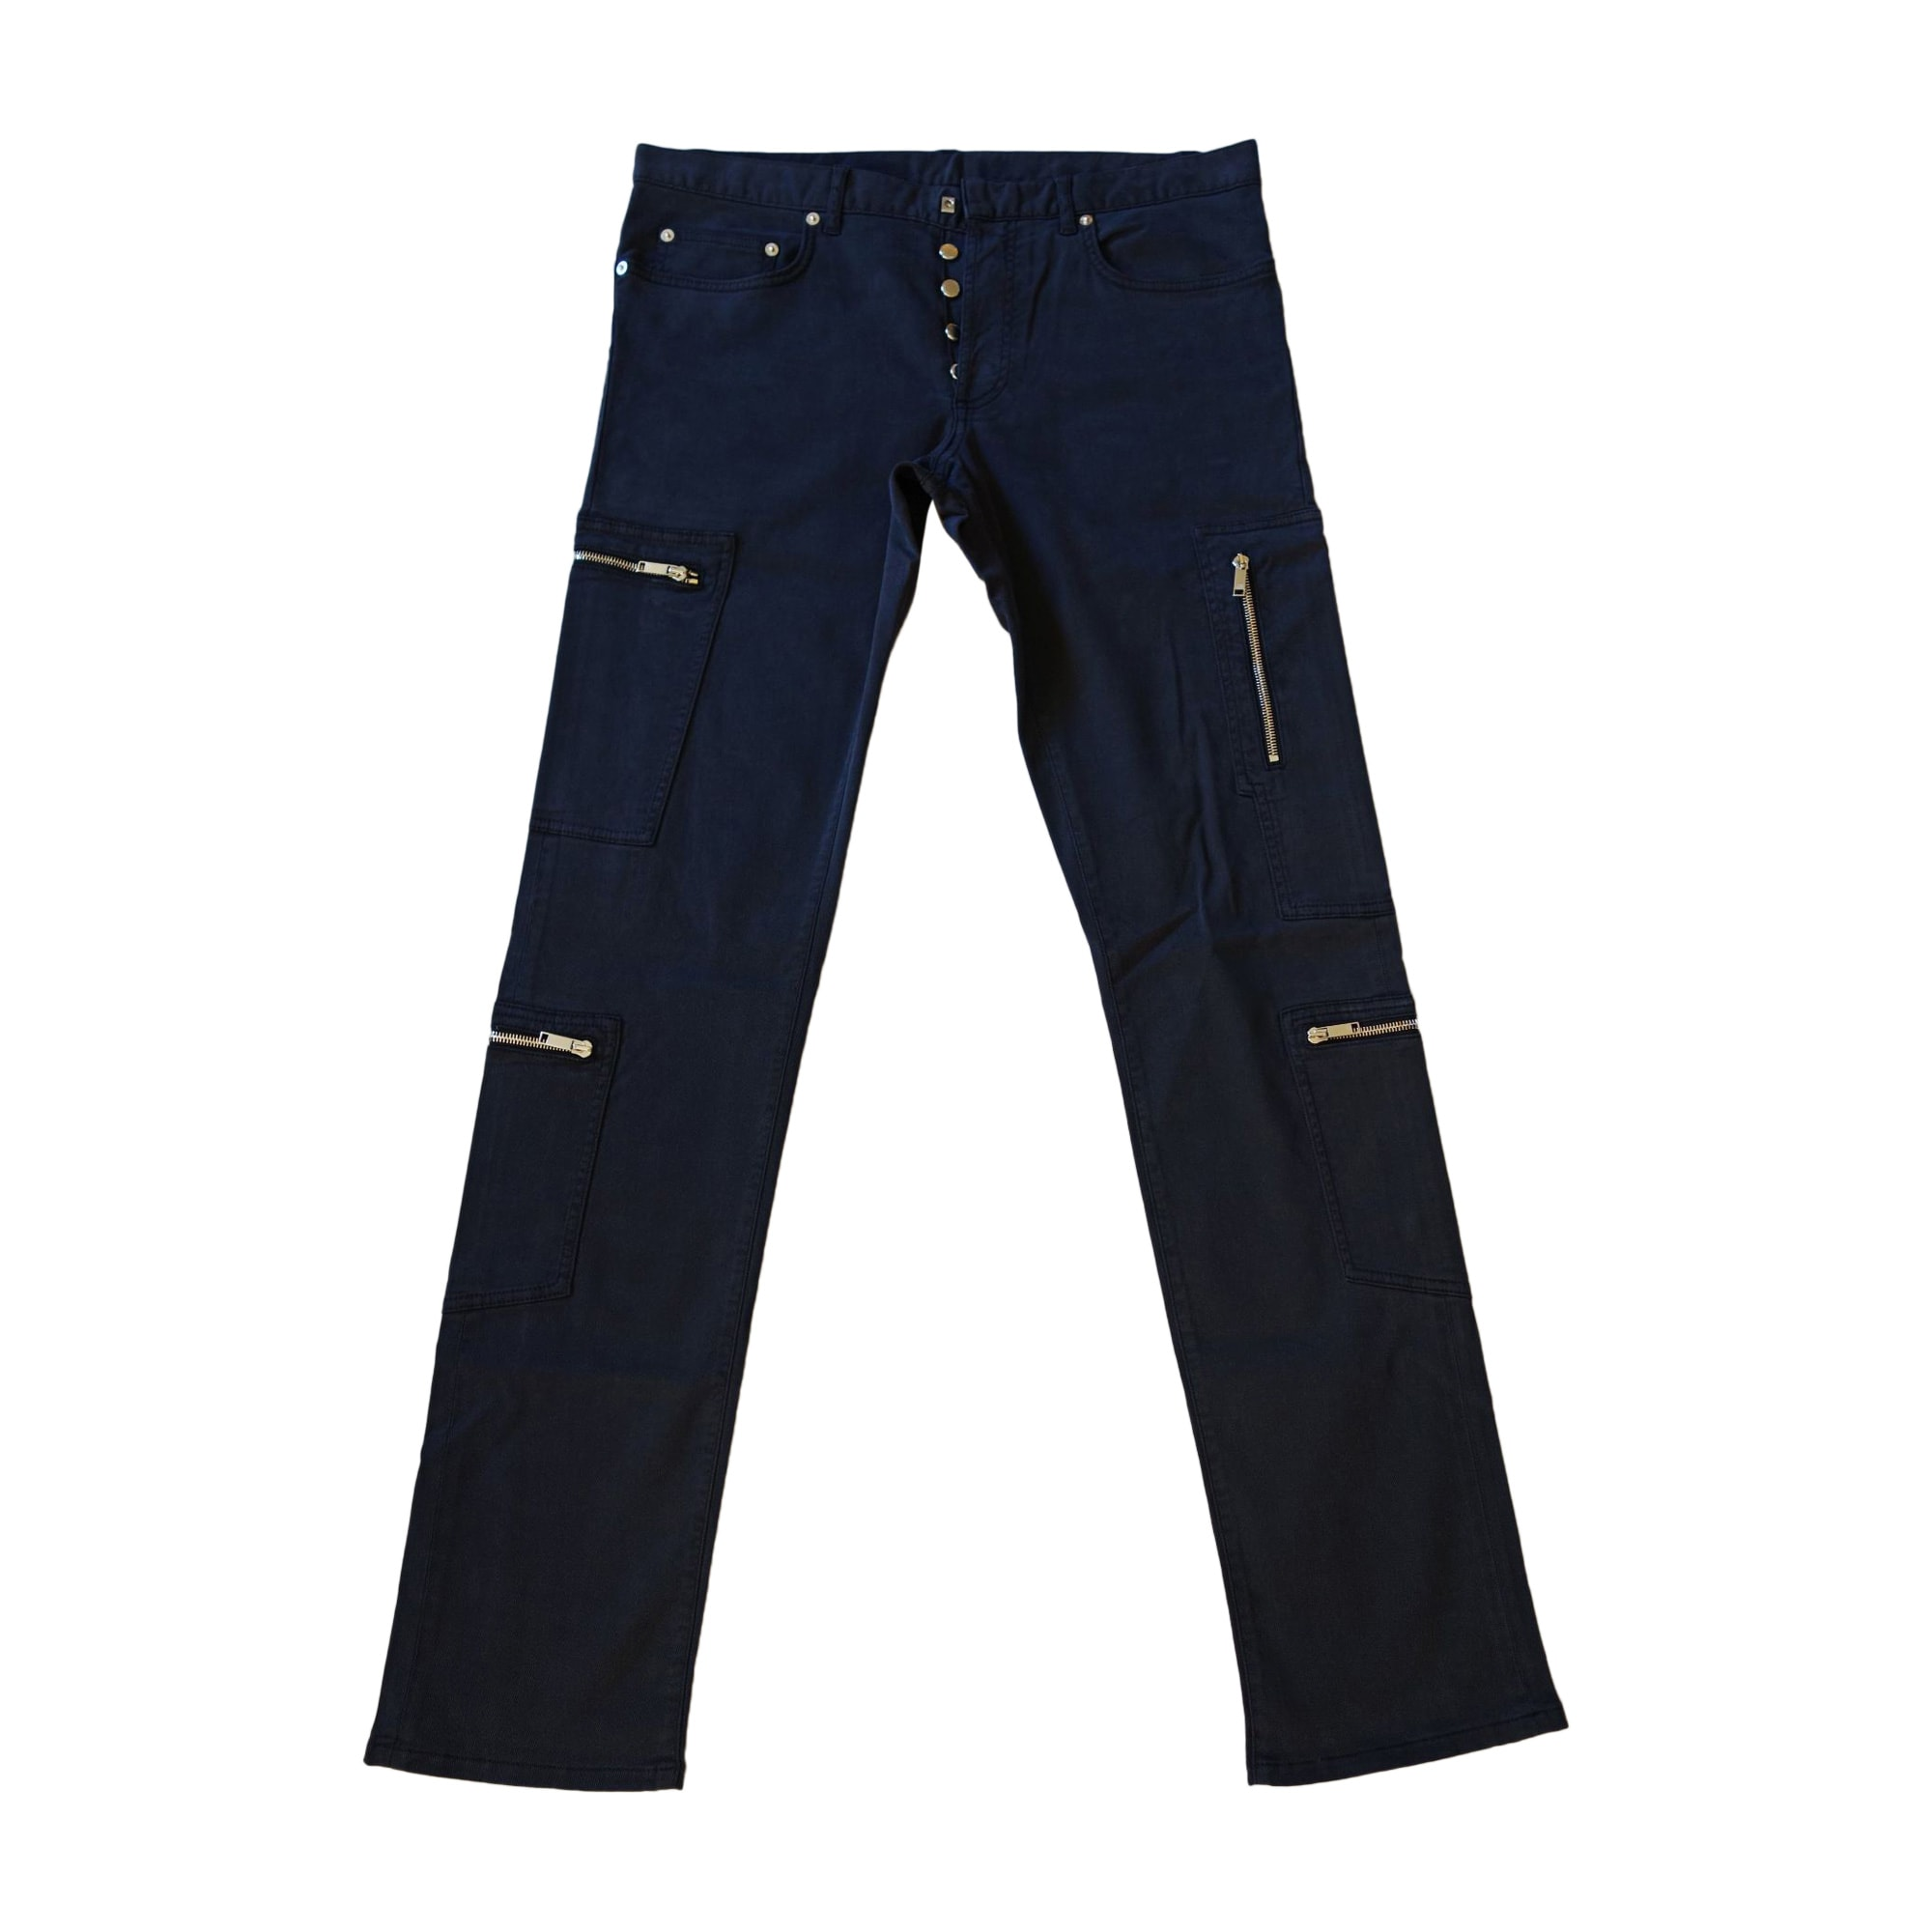 Skinny Jeans DIOR HOMME Blue, navy, turquoise